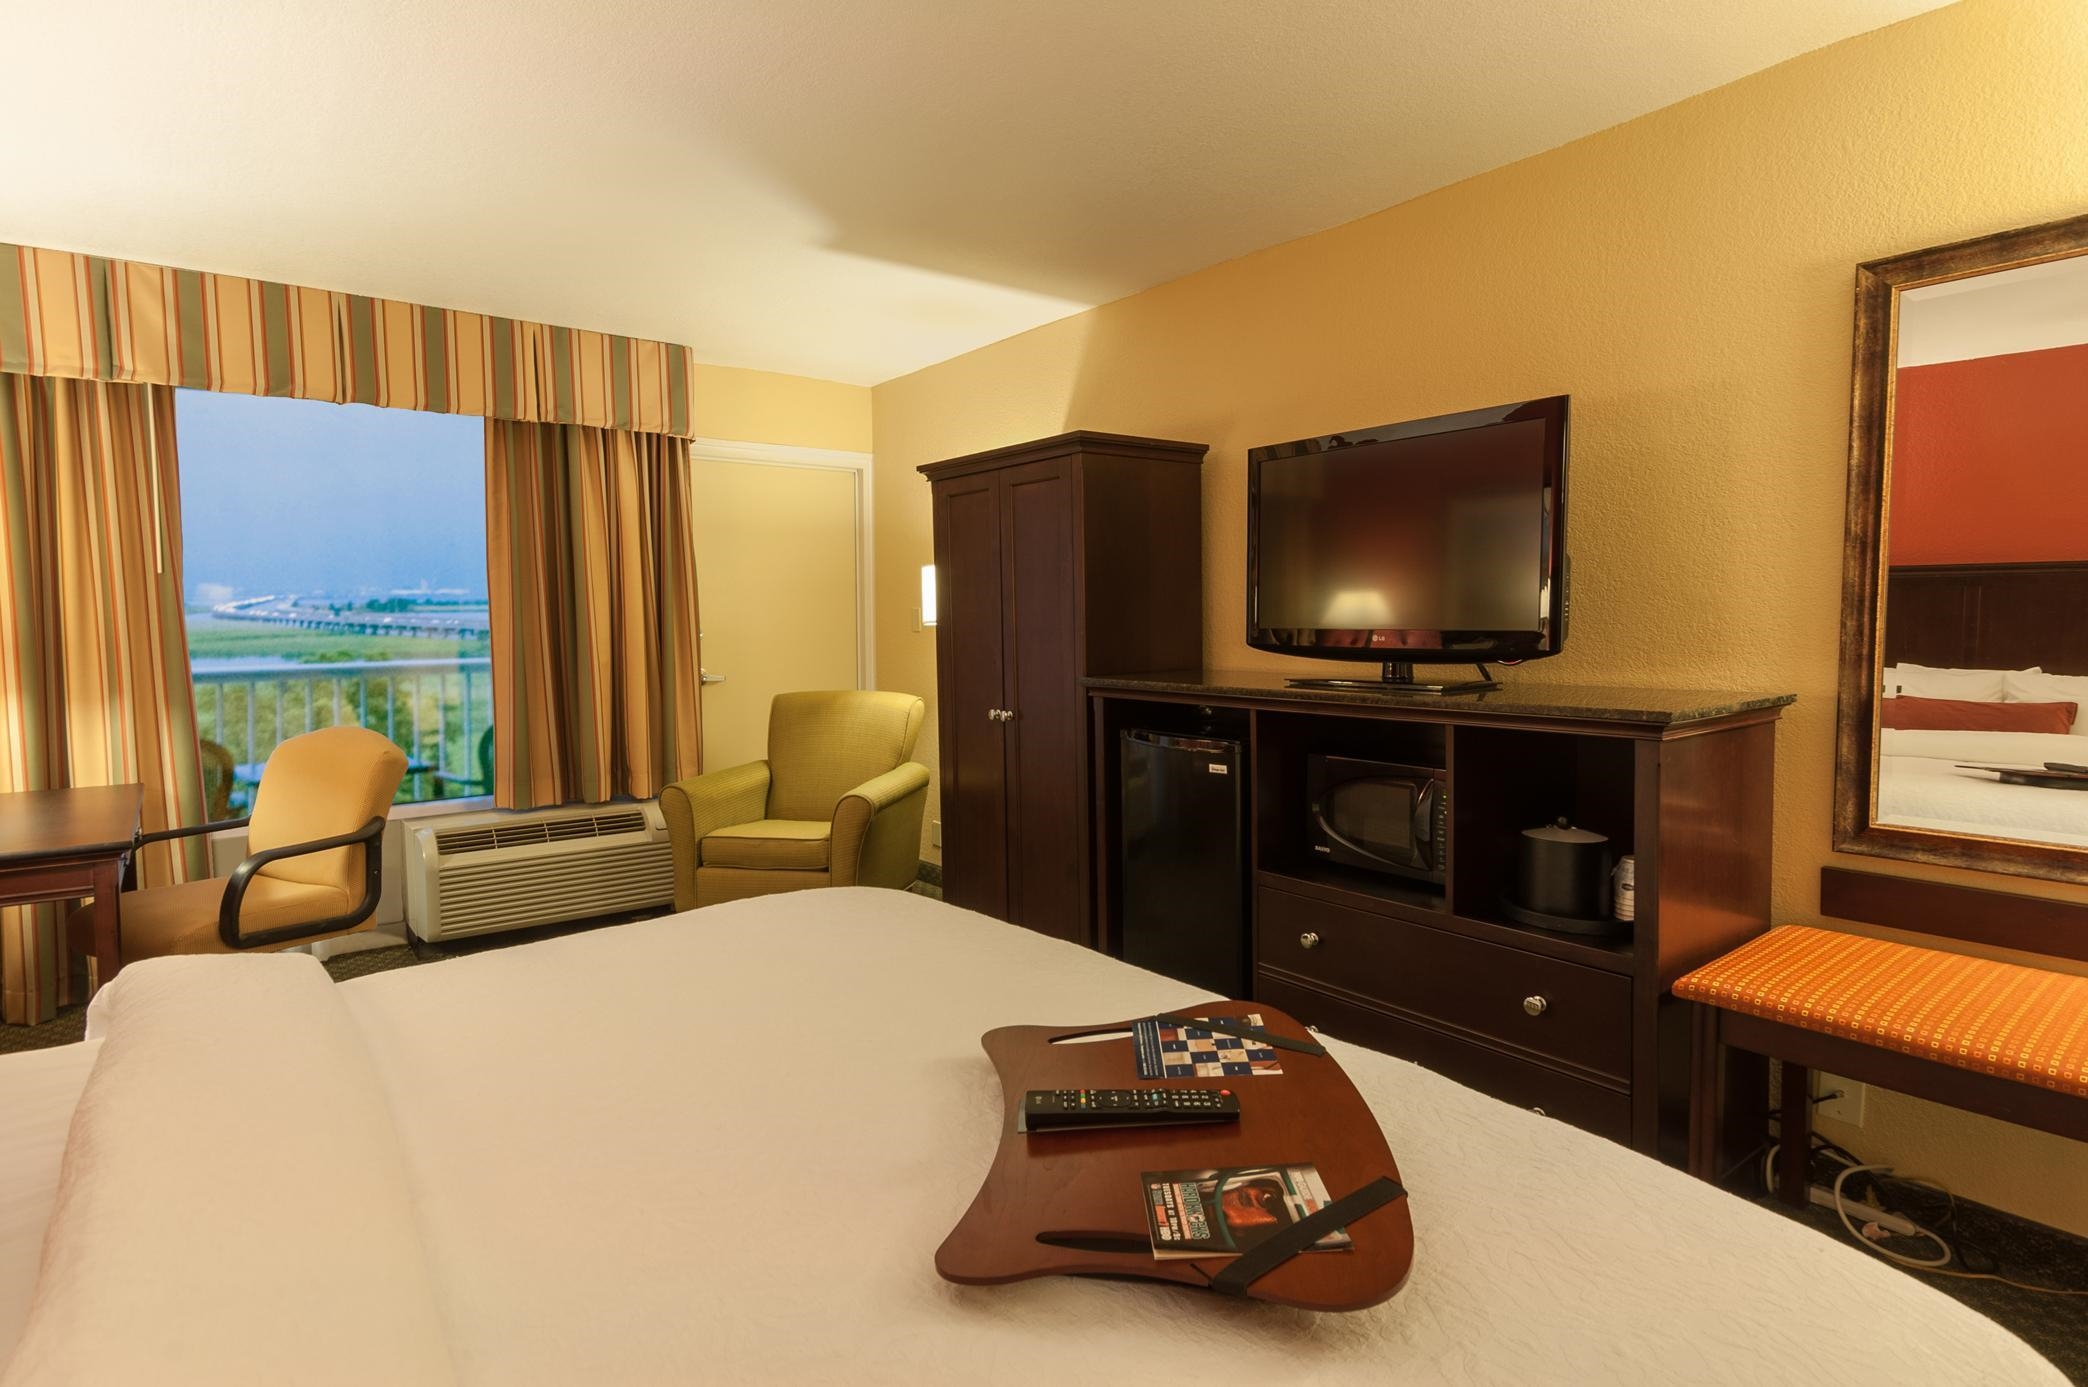 Executive Room with a view